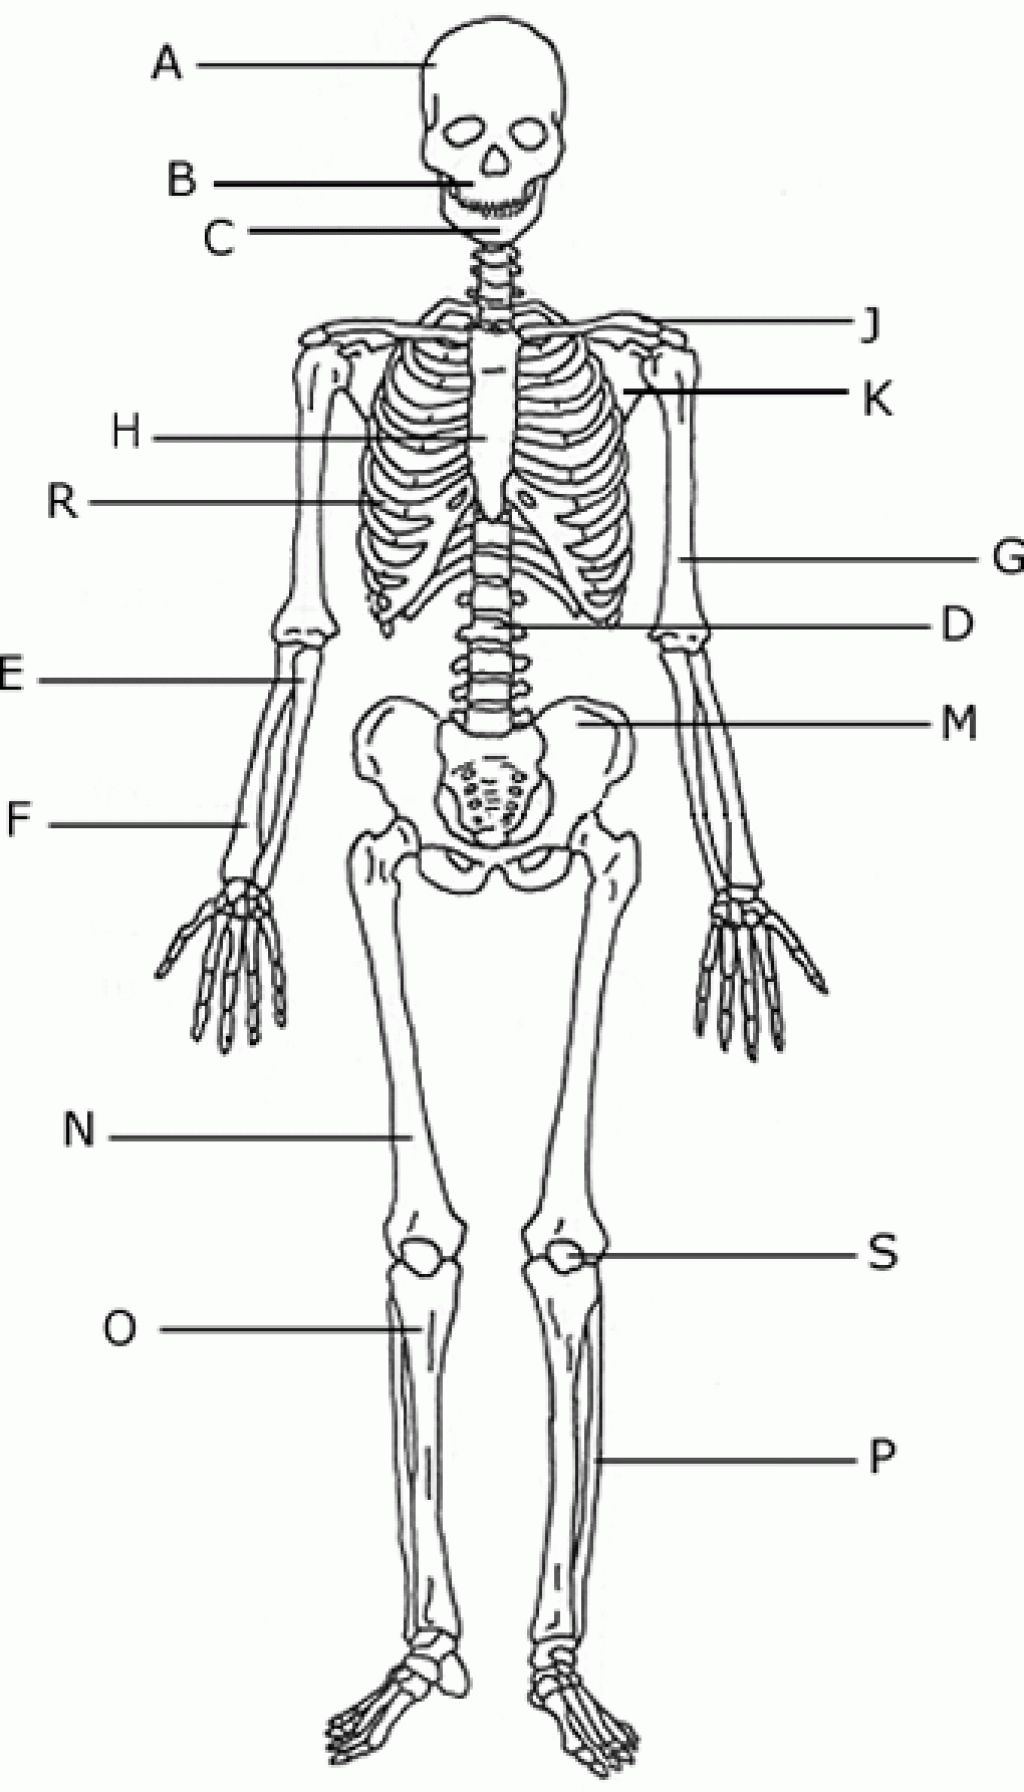 hight resolution of unlabeled diagram of the human skeleton unlabeled diagram of the human skeleton system skeletal anatomy